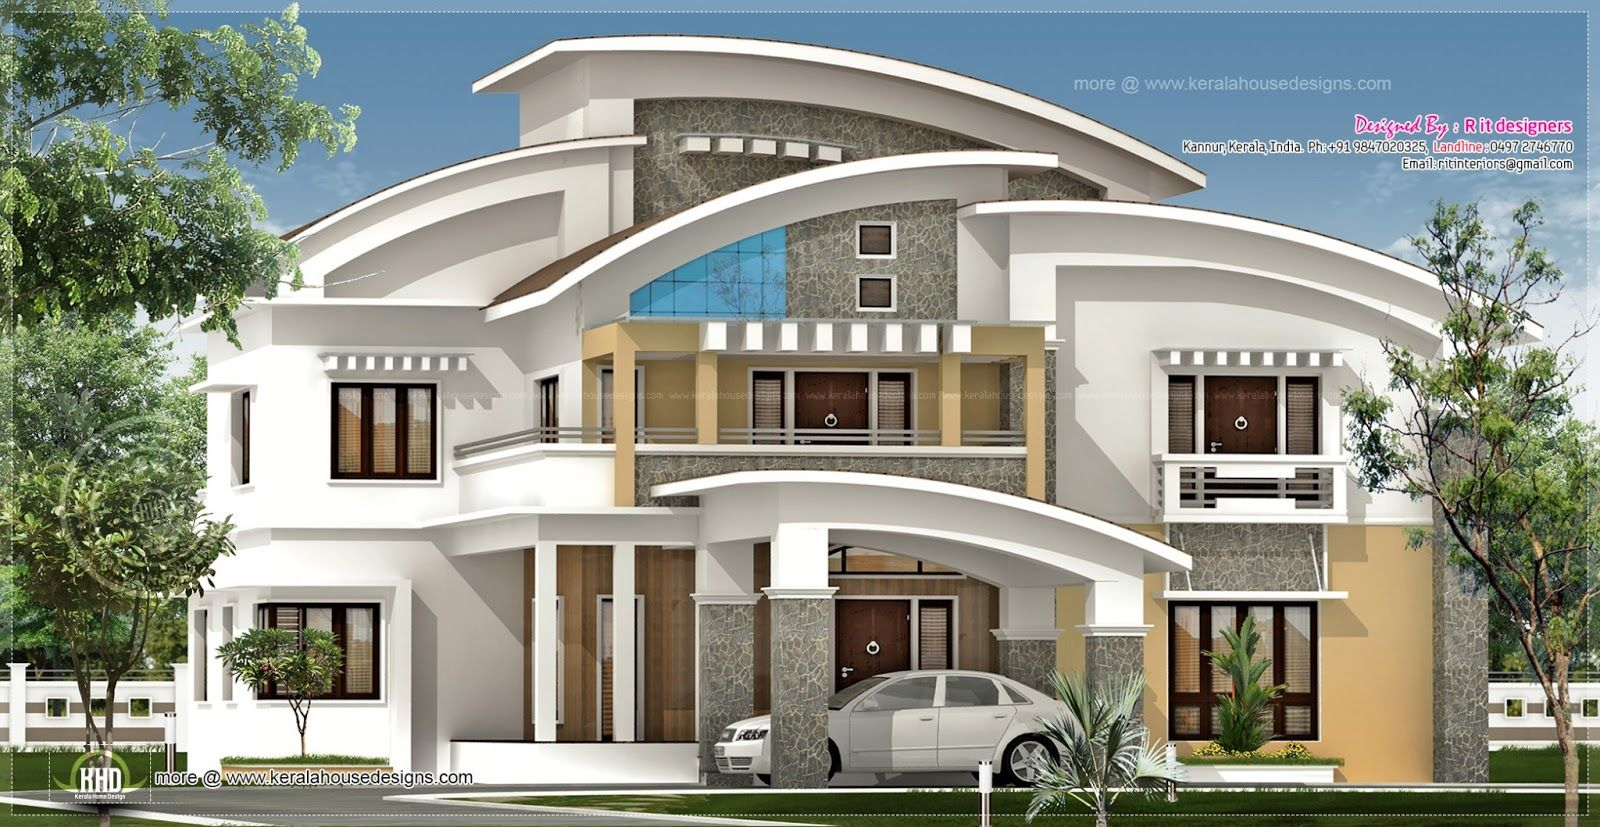 Awesome luxury homes plans 8 french country luxury home for Free online exterior home design